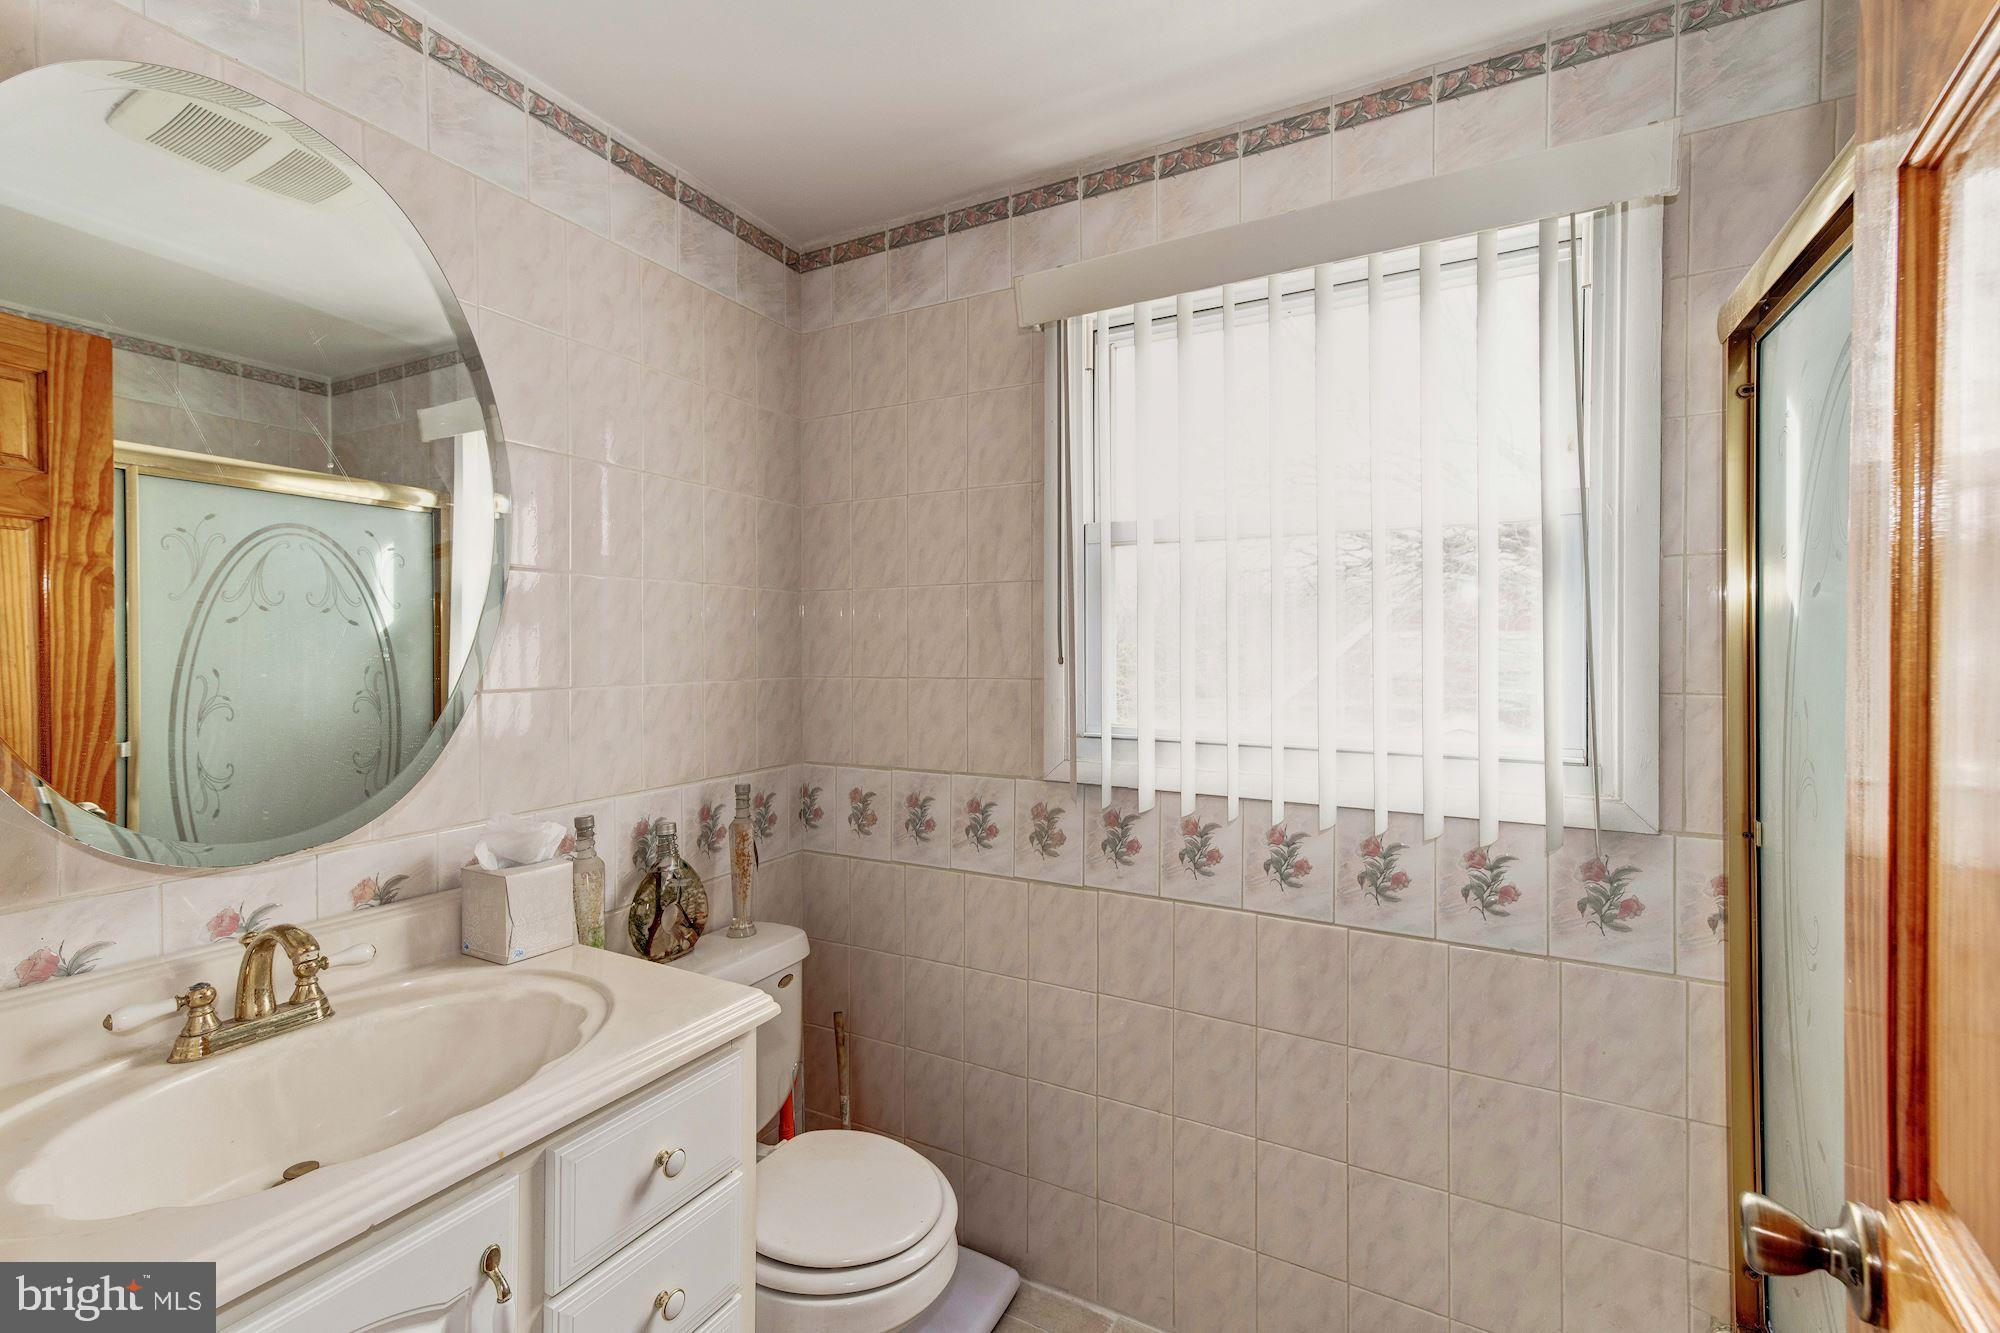 2nd full bath with ceramic floors and walls